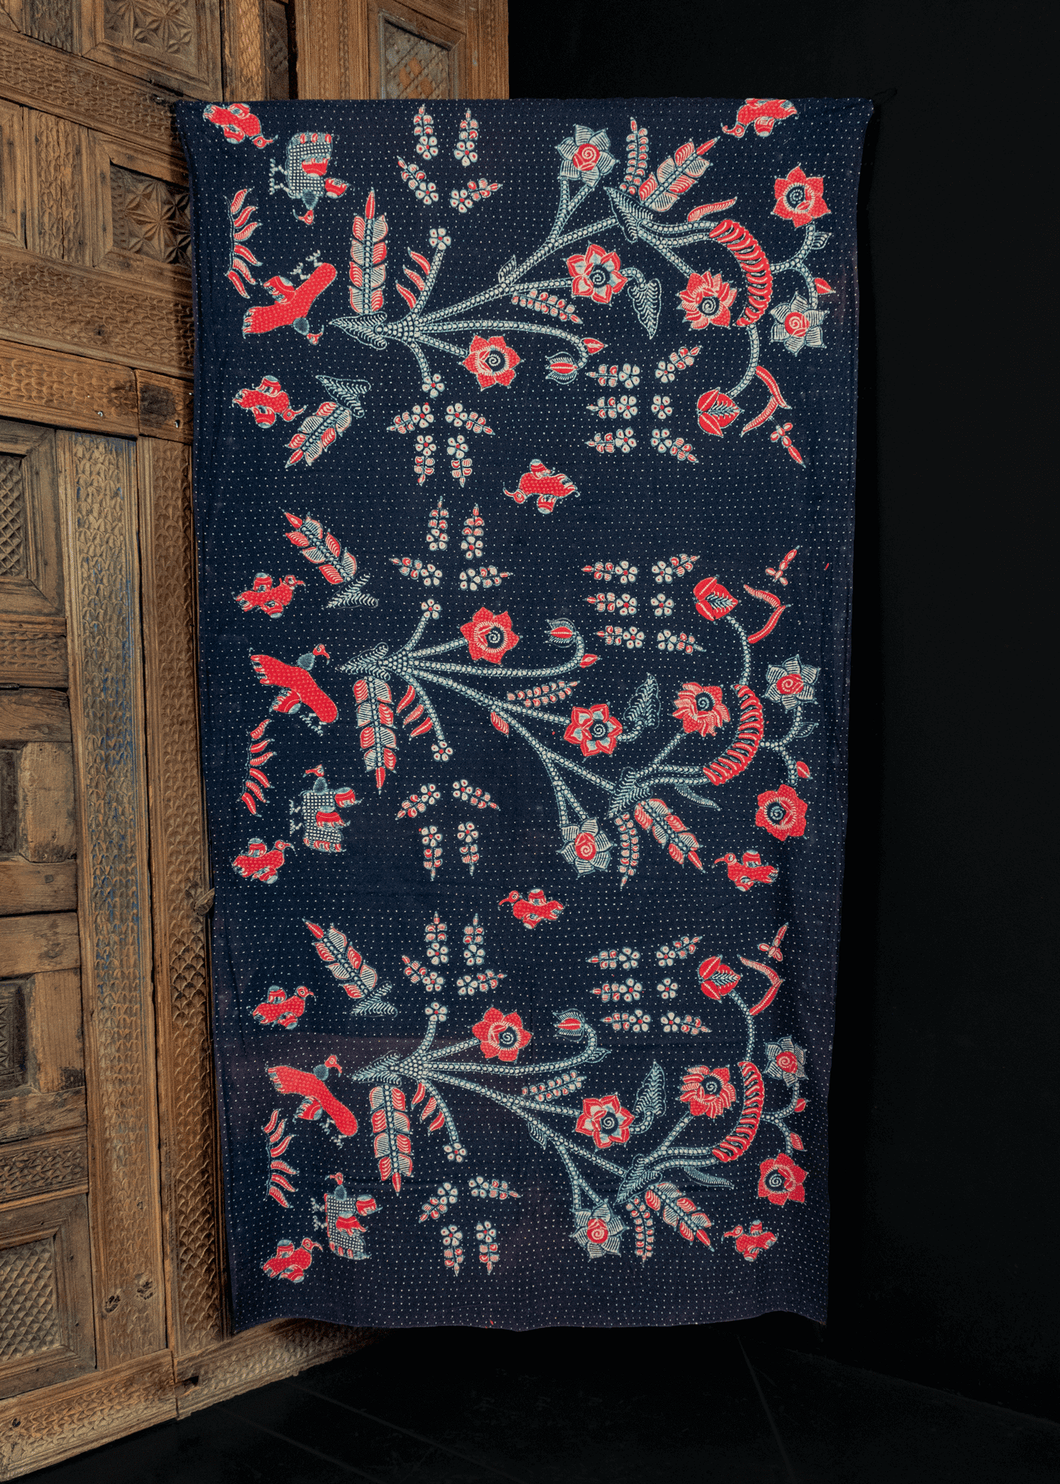 vintage skirtcloth from Java, Indonesia blockprinted with  a bouquet of flowers in red, white and blue on a dark blue ground with white polka dots. in very good condition, with some sun fading along old fold lines.